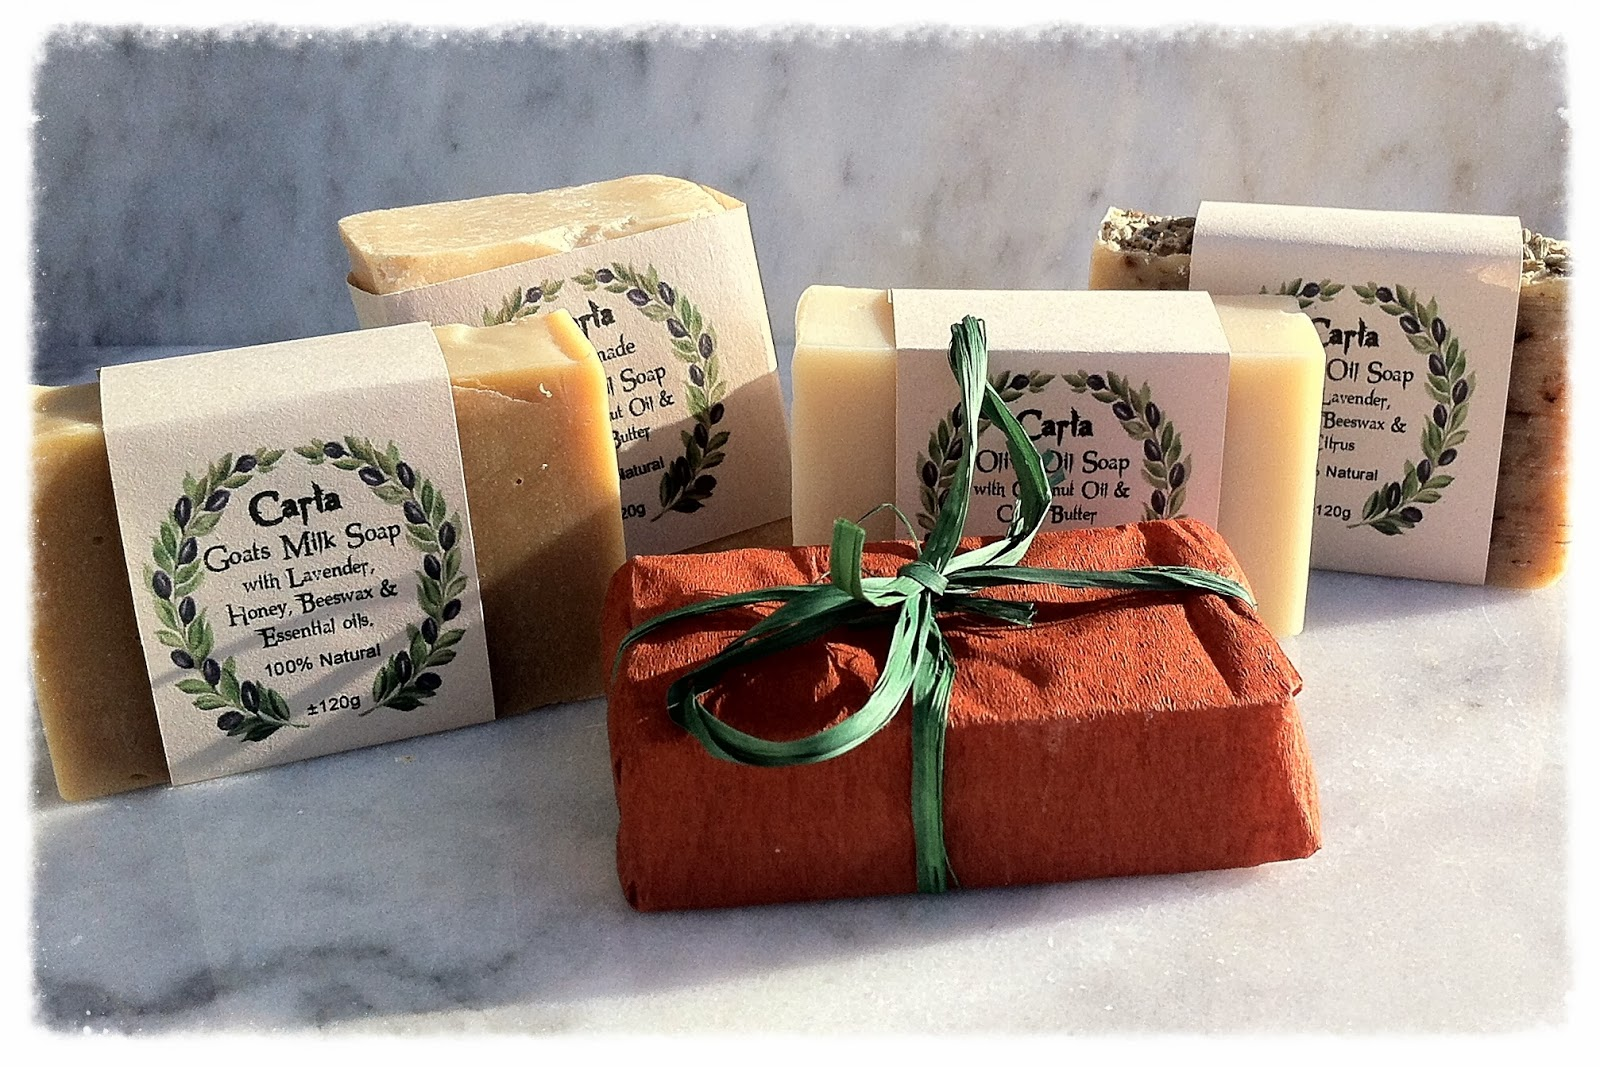 Handmade soap from Turkey